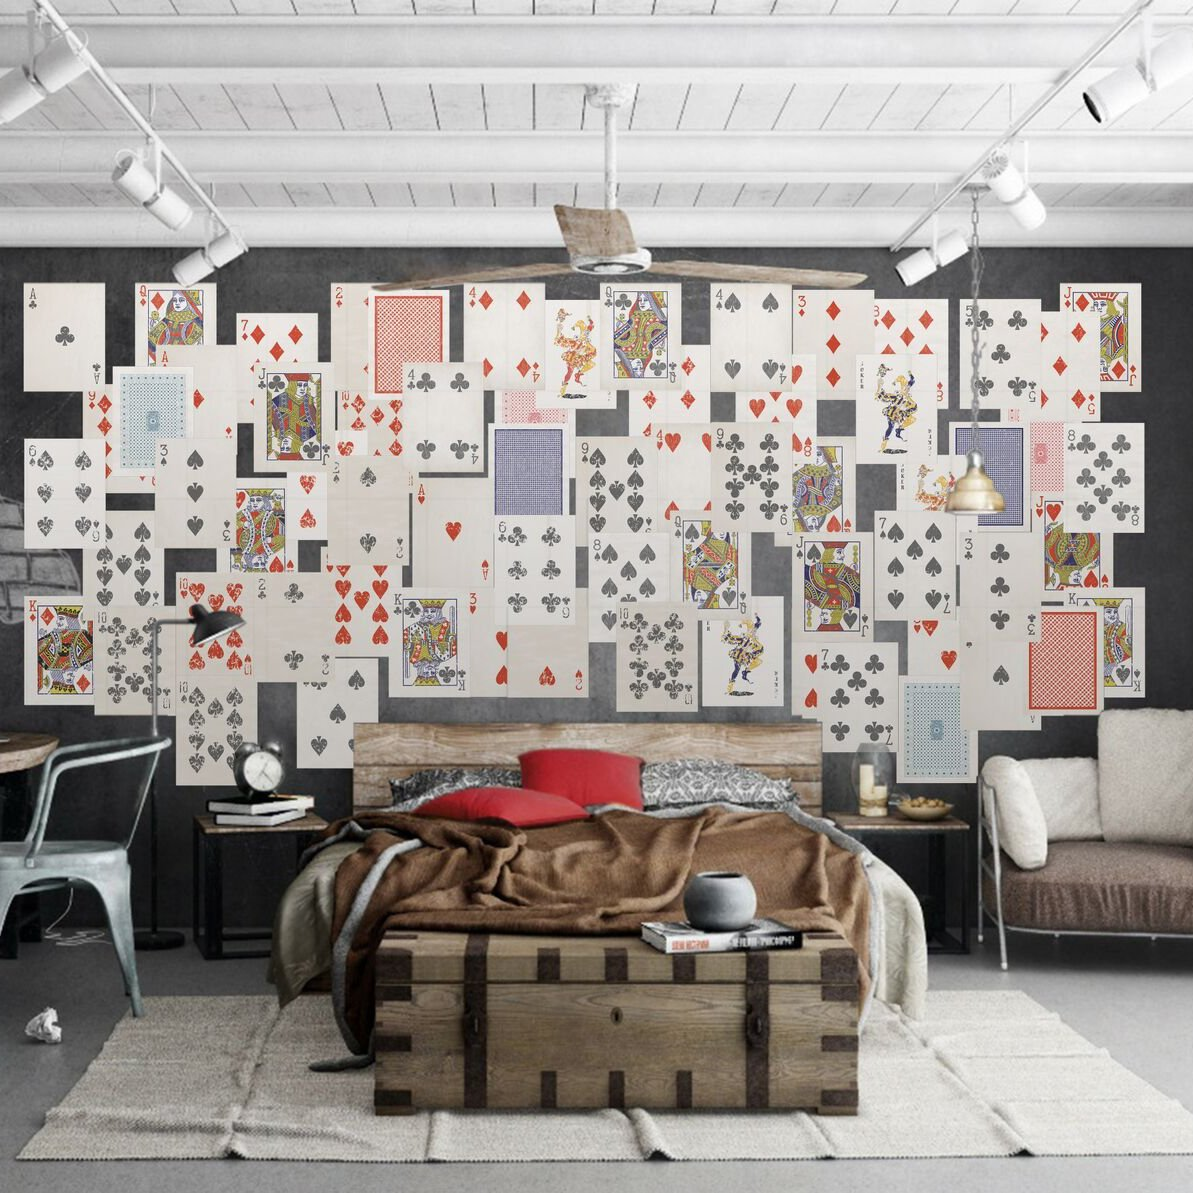 Ace Cards Collage Wall Mural